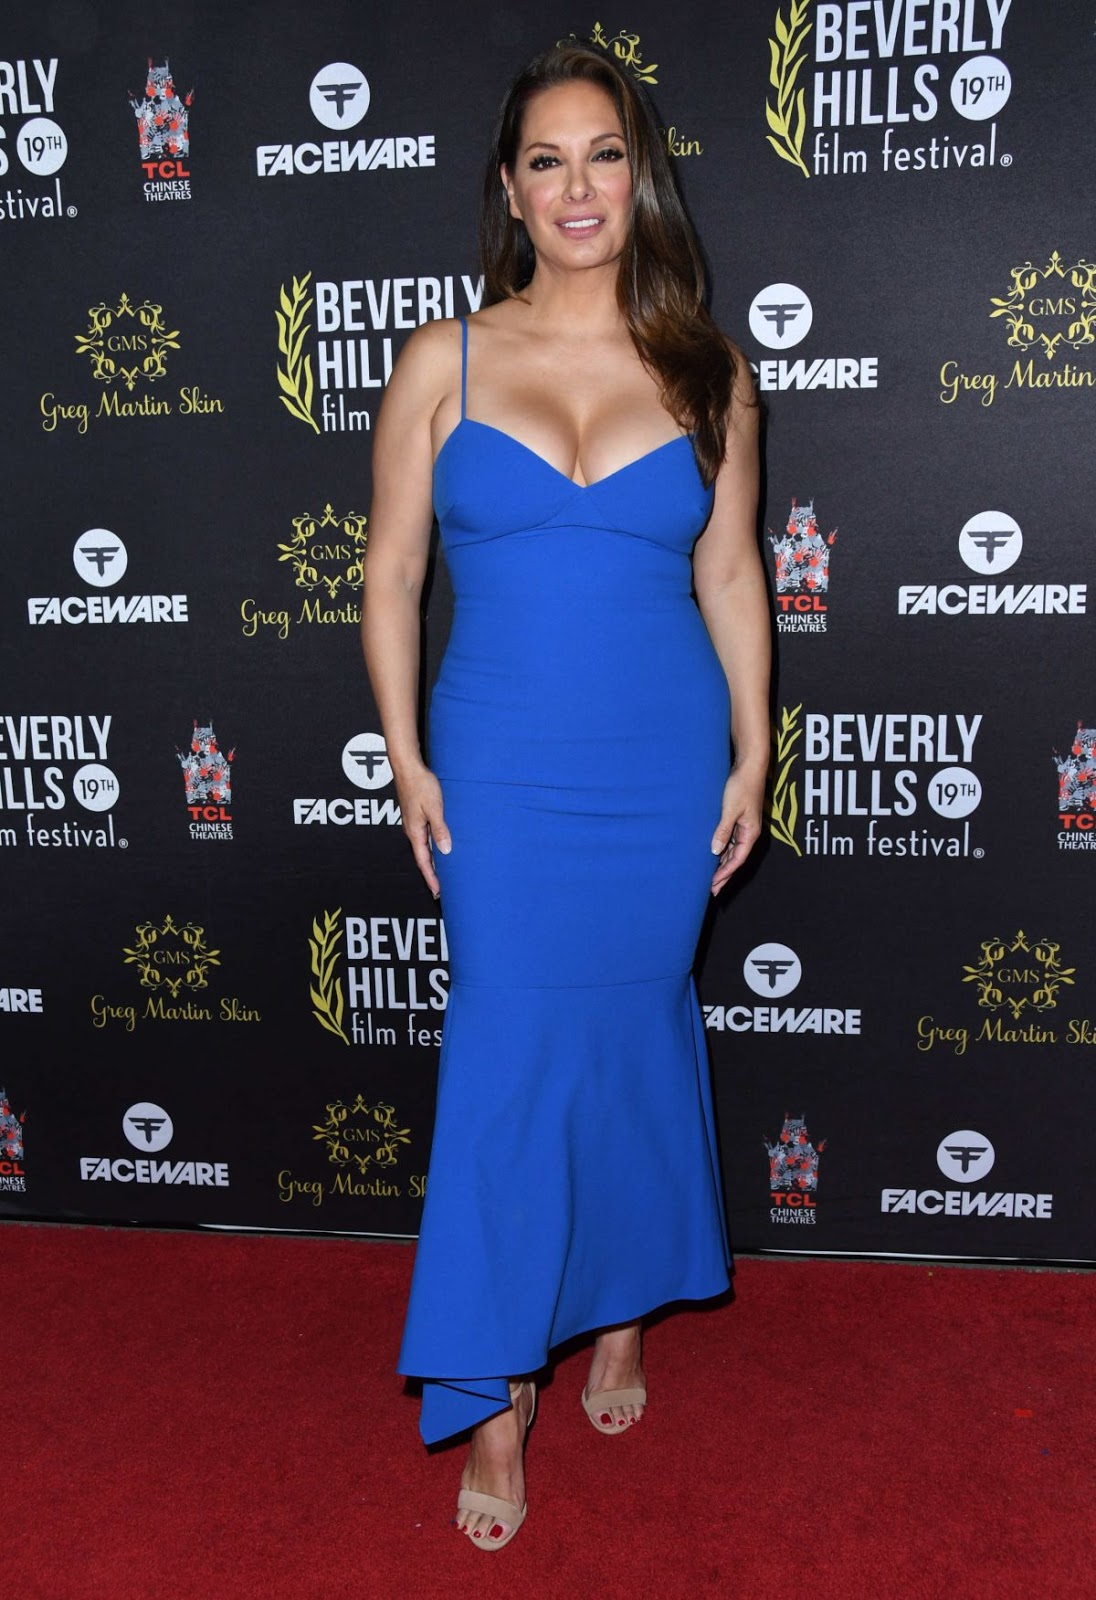 Alex Meneses at Beverly Hills Film Festival Opening Night in Hollywood, 04.03.2019 1